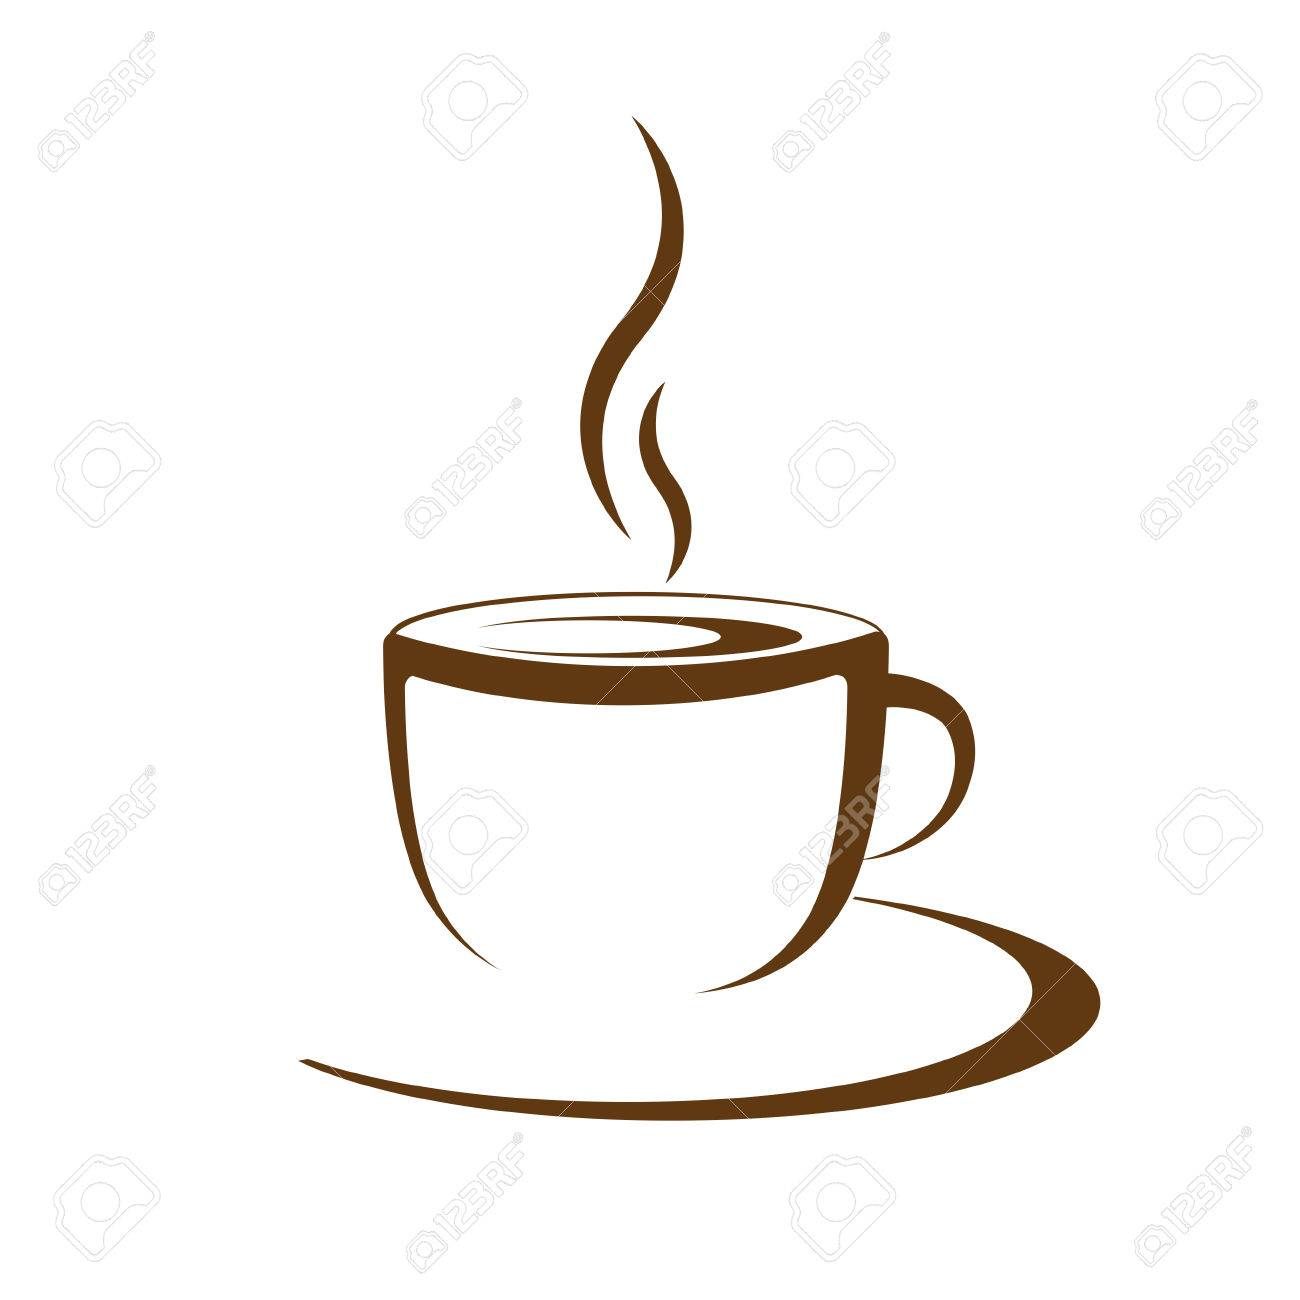 hot coffee cup vector on a white background royalty free cliparts rh 123rf com coffee cup vector icon coffee cup vector free